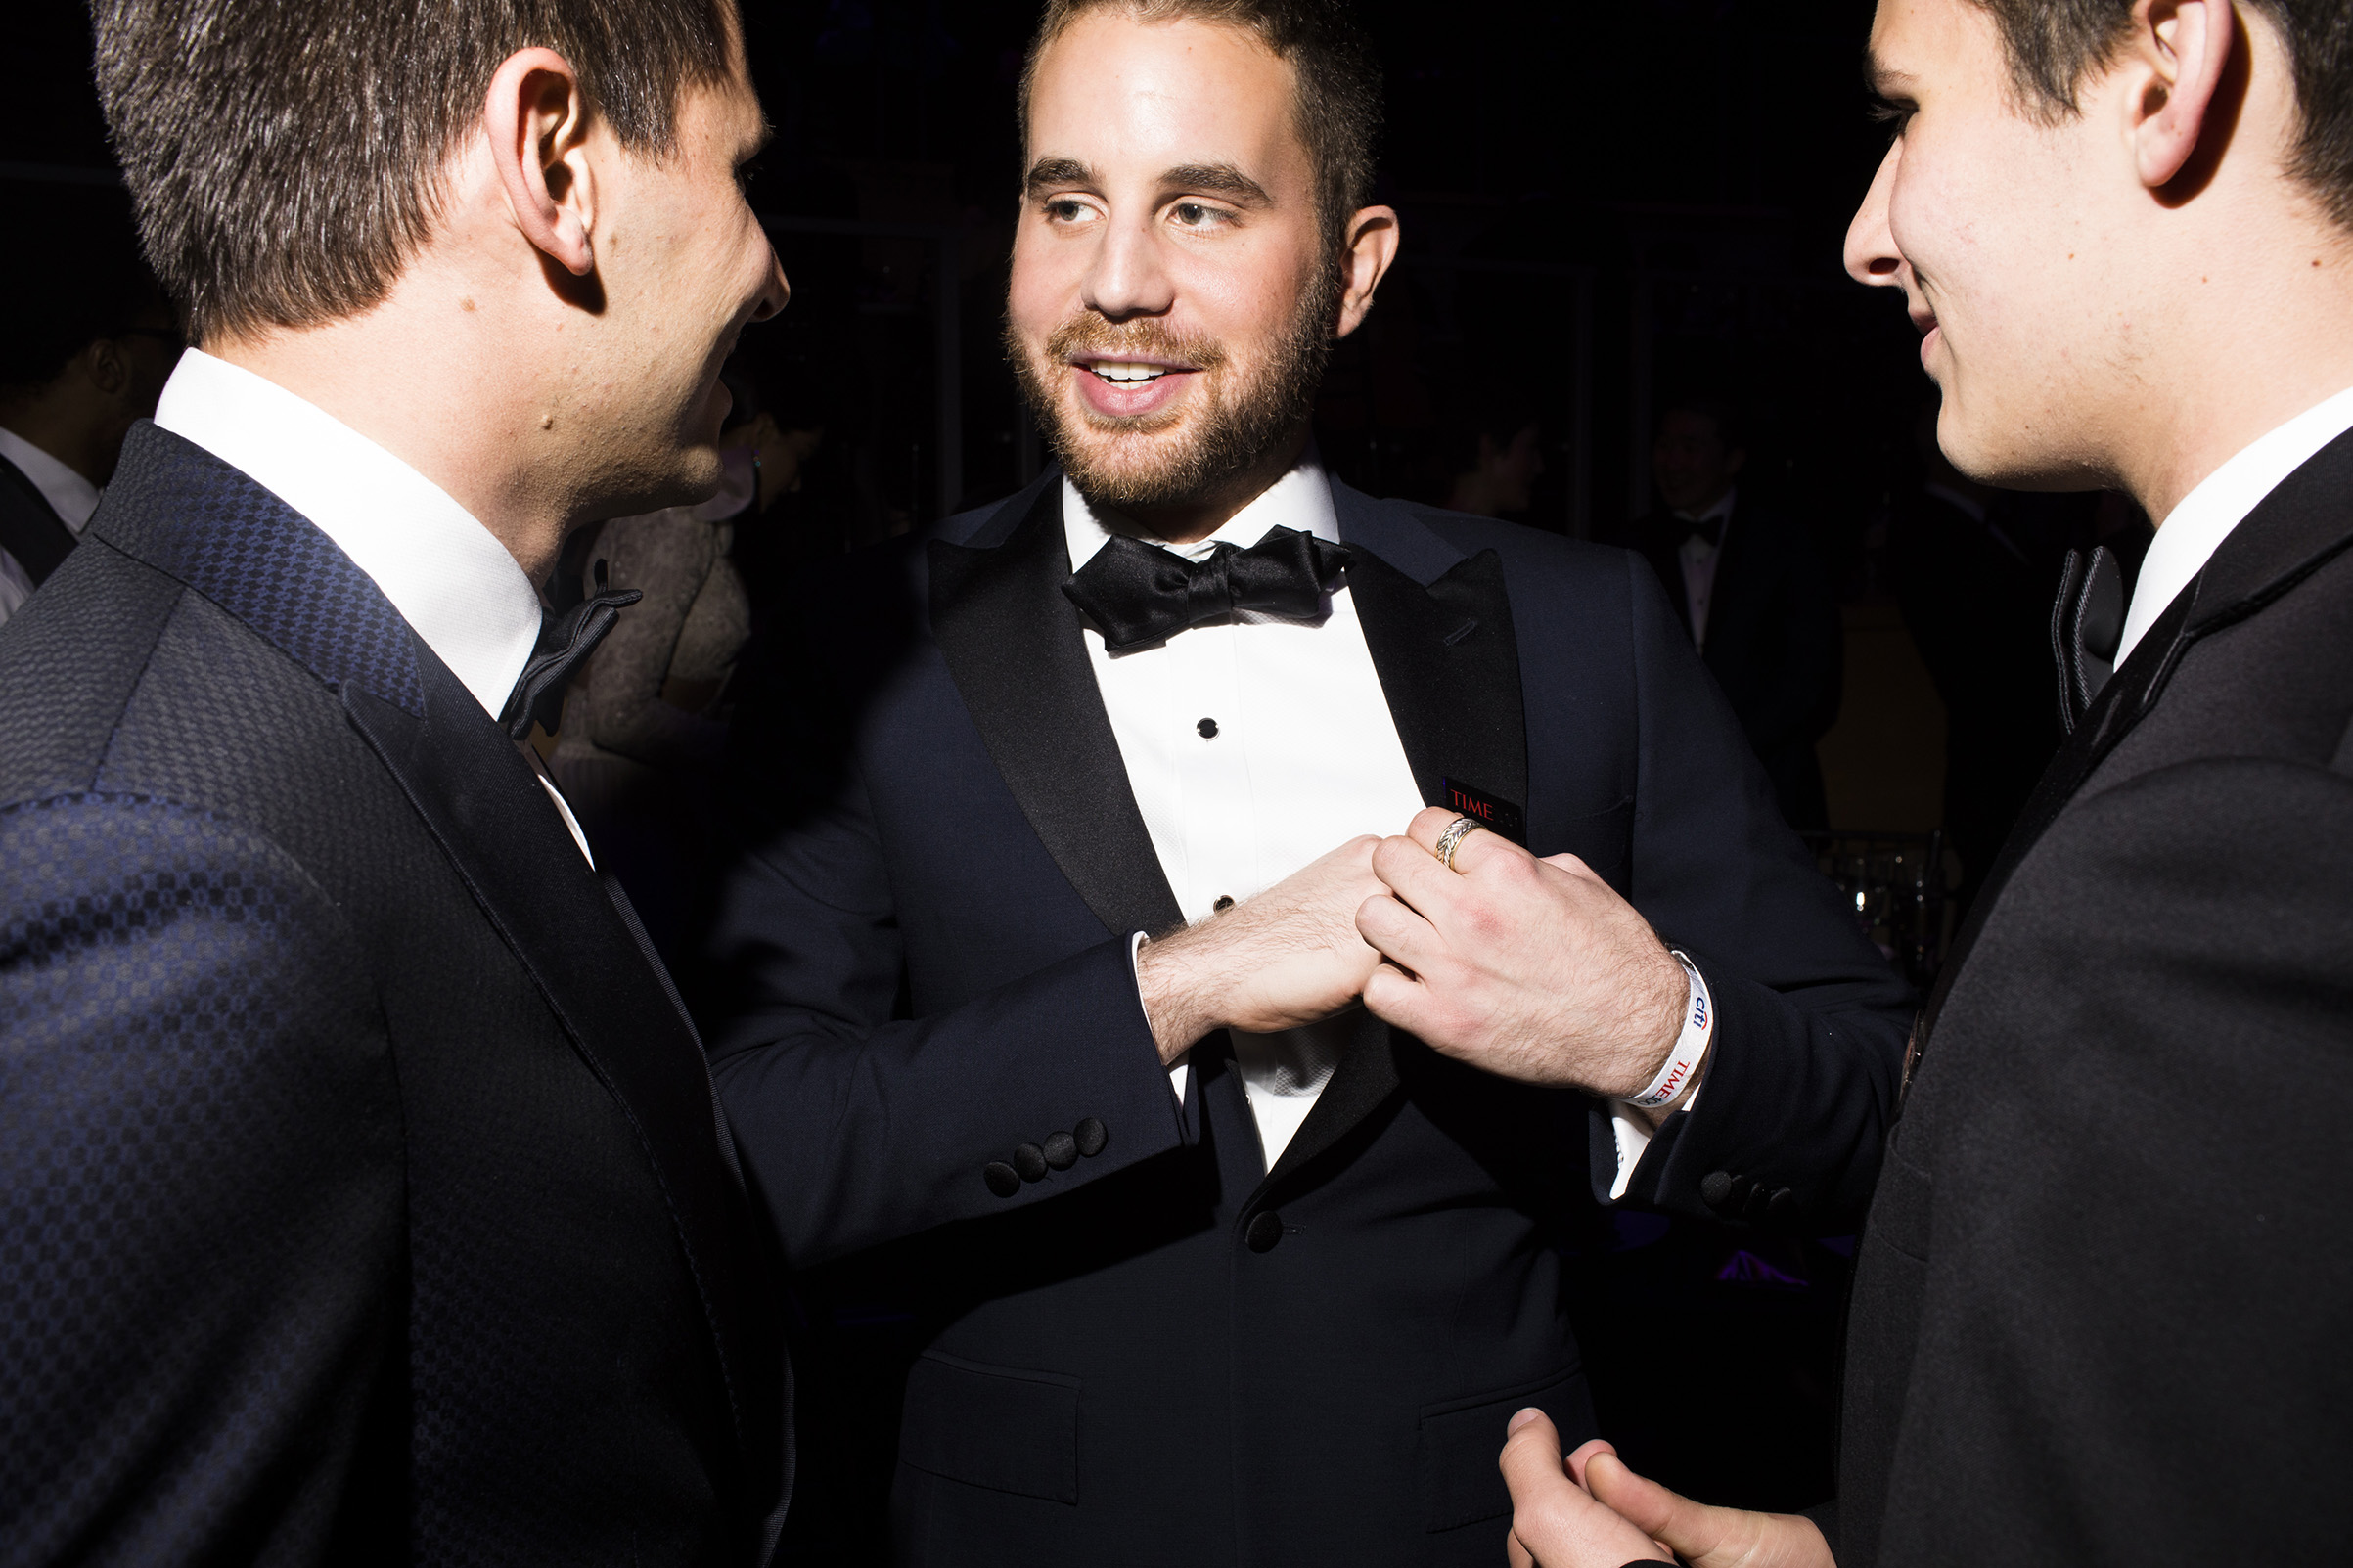 Ben Platt at the Time 100 Gala at Jazz at Lincoln Center on April 24, 2018 in New York City.